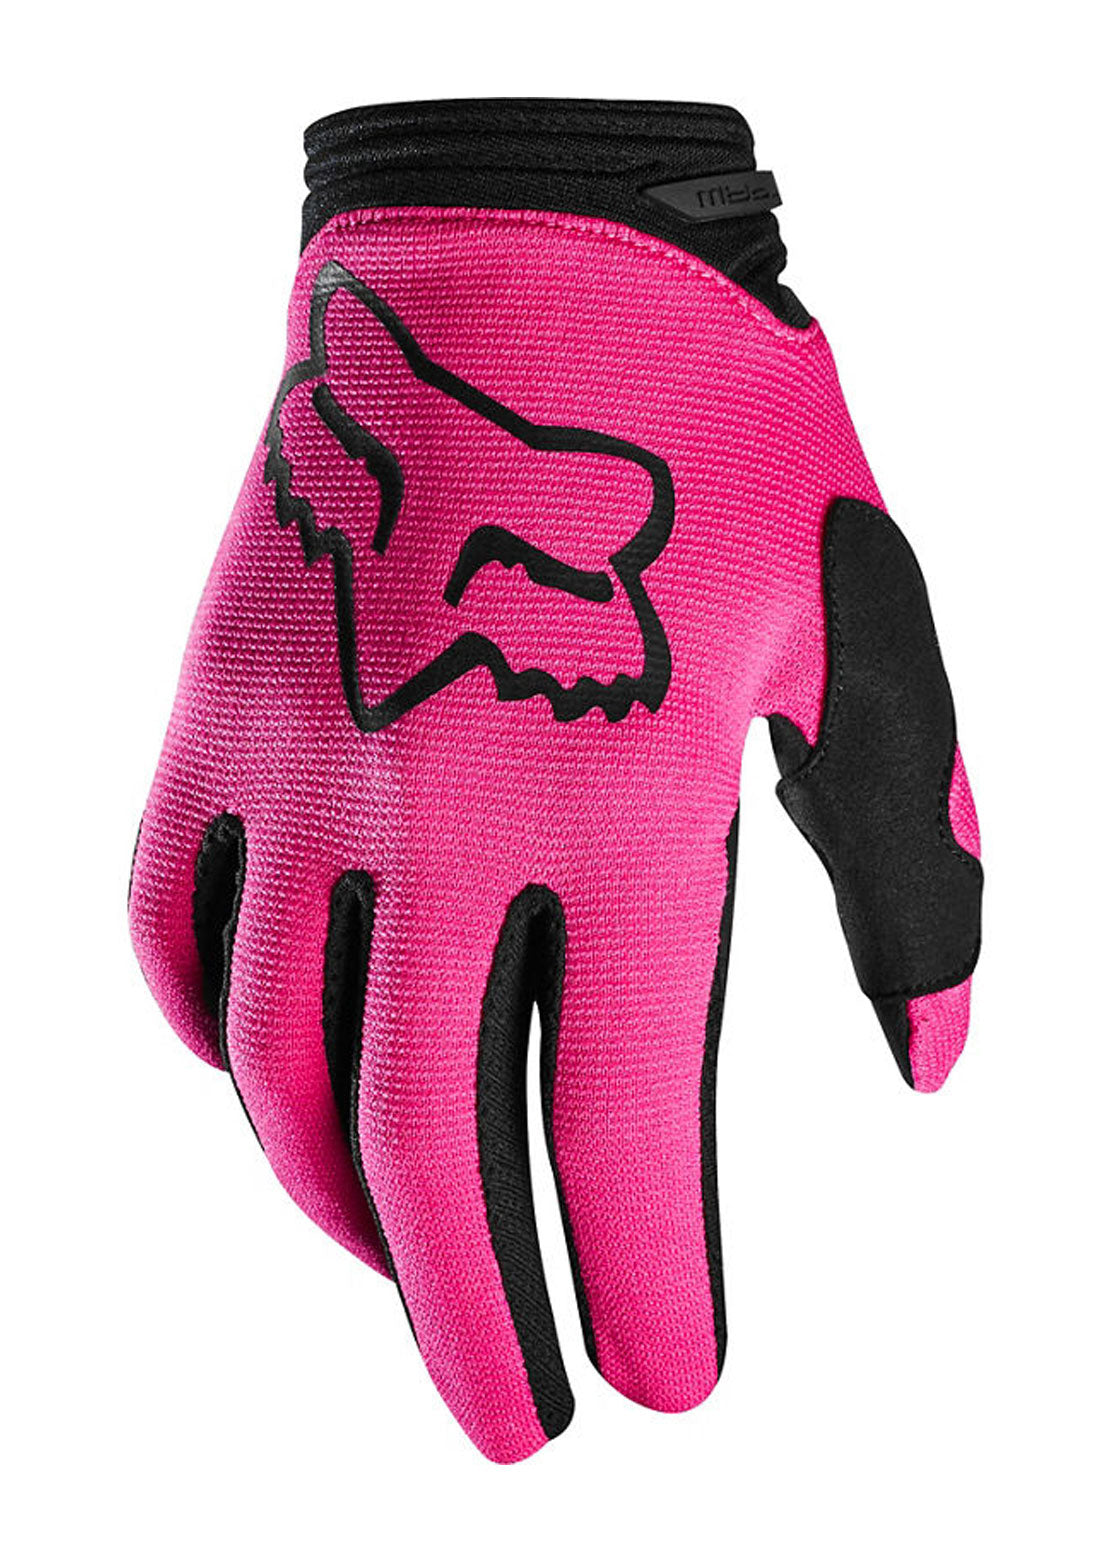 Fox Women's Dirtpaw Prix Mountain Bike Gloves Pink